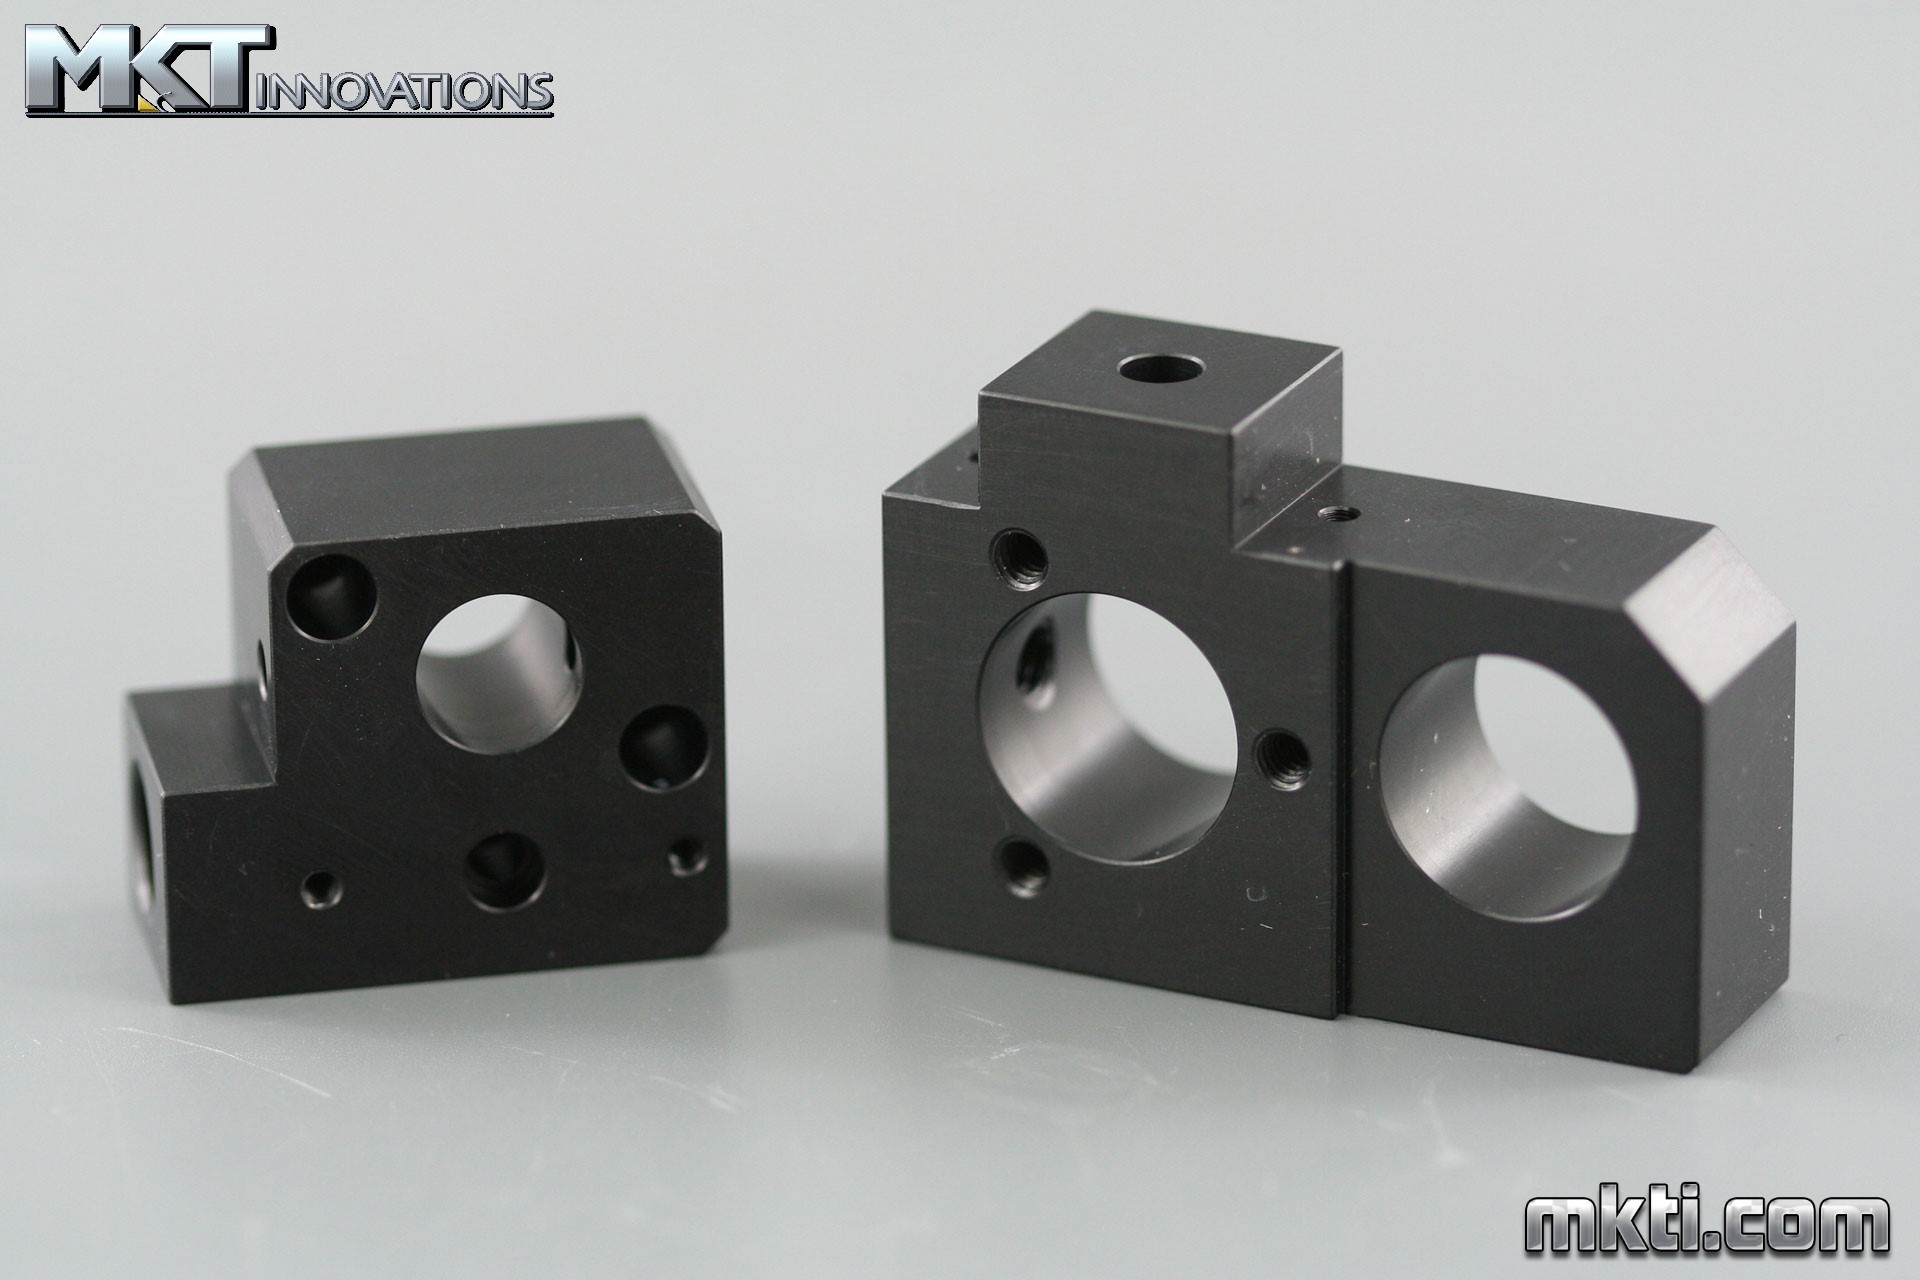 Anodized Aluminum - Pump Components